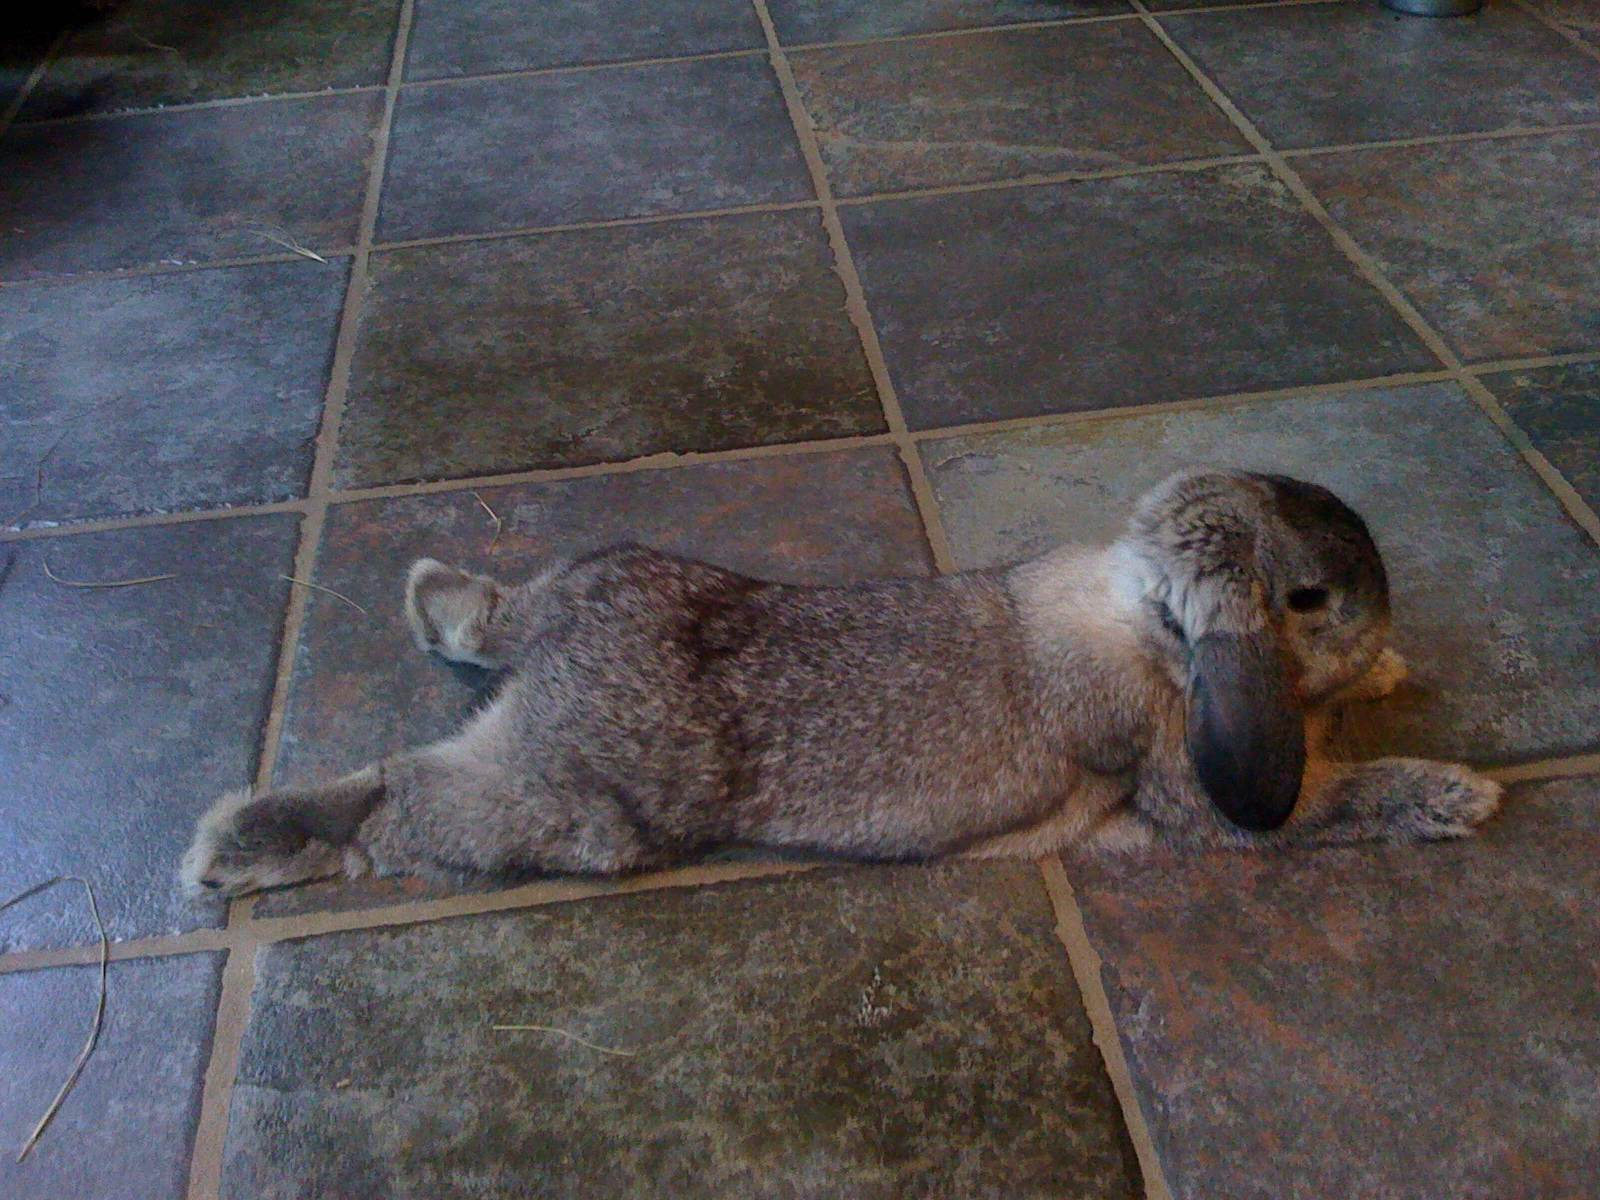 Bunny Sprawls Out on the Tile Floor